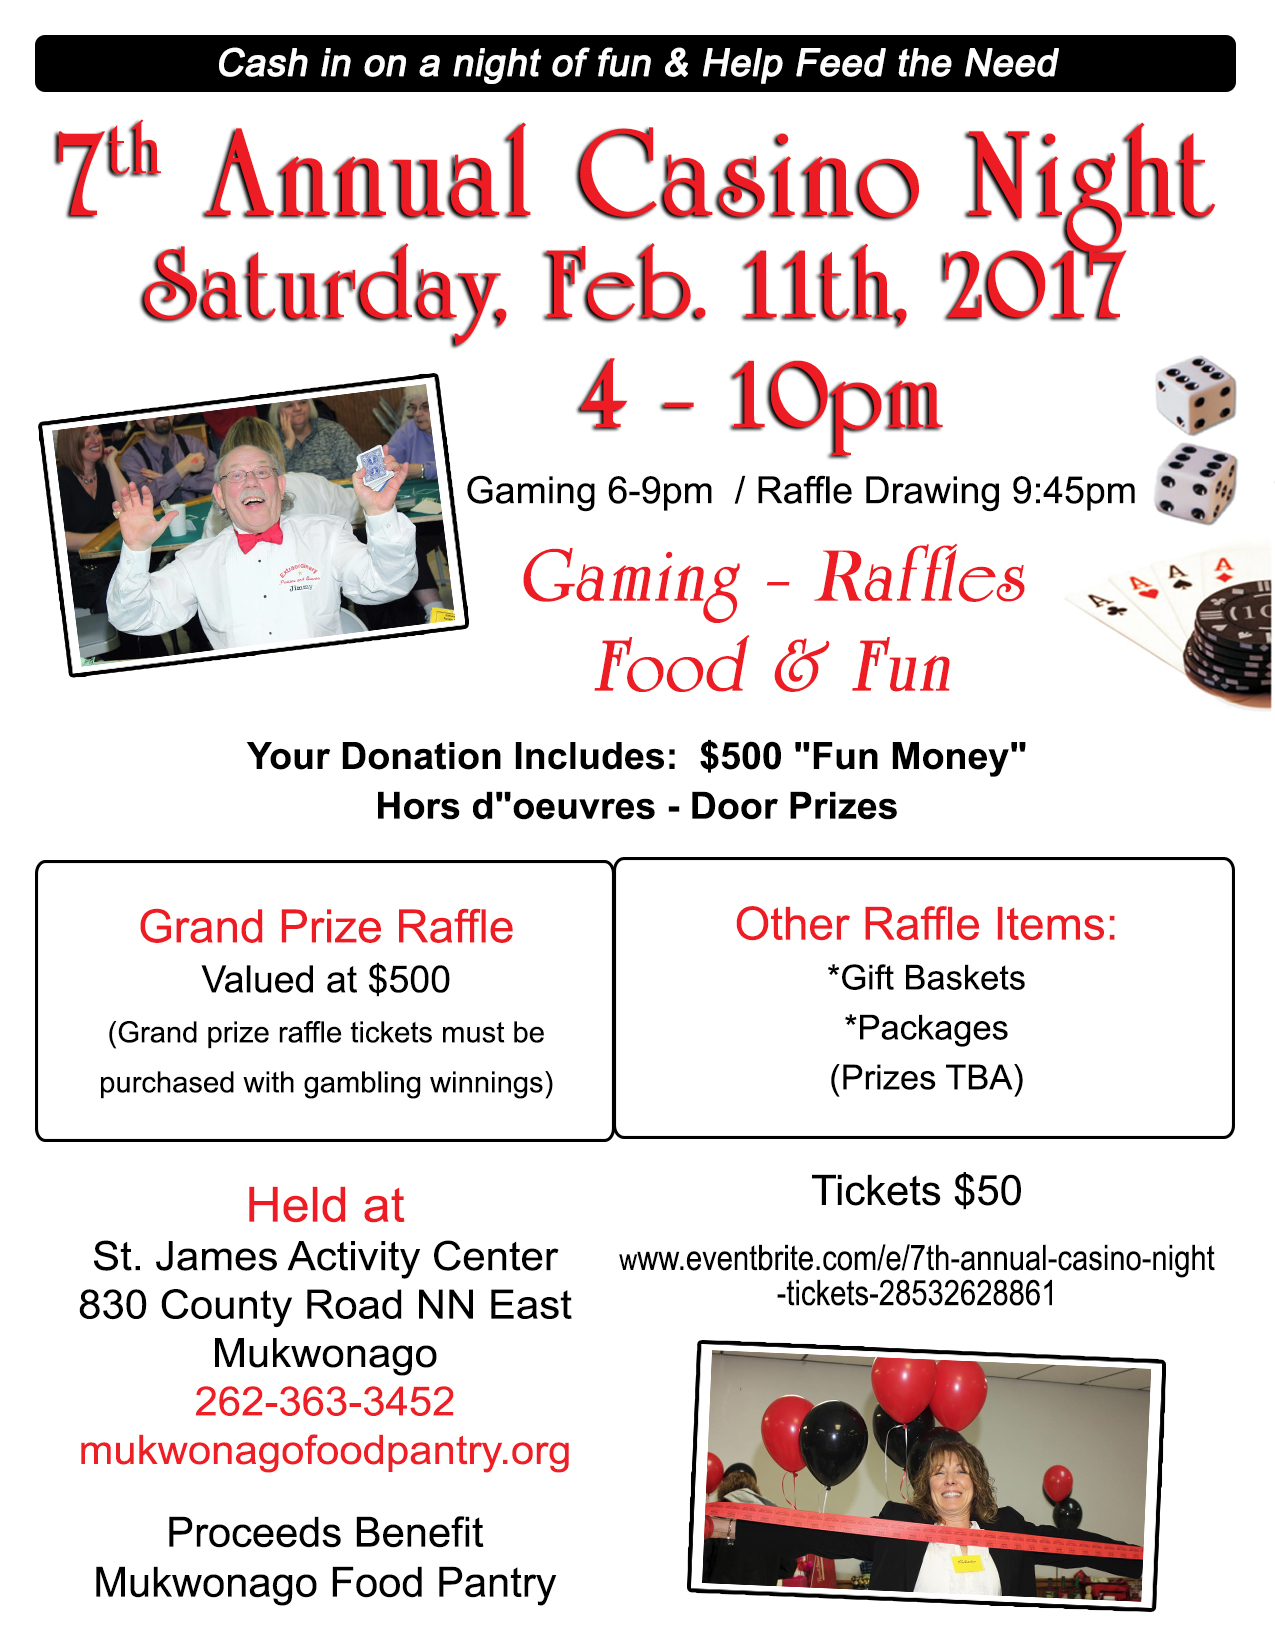 7th Annual Casino Night